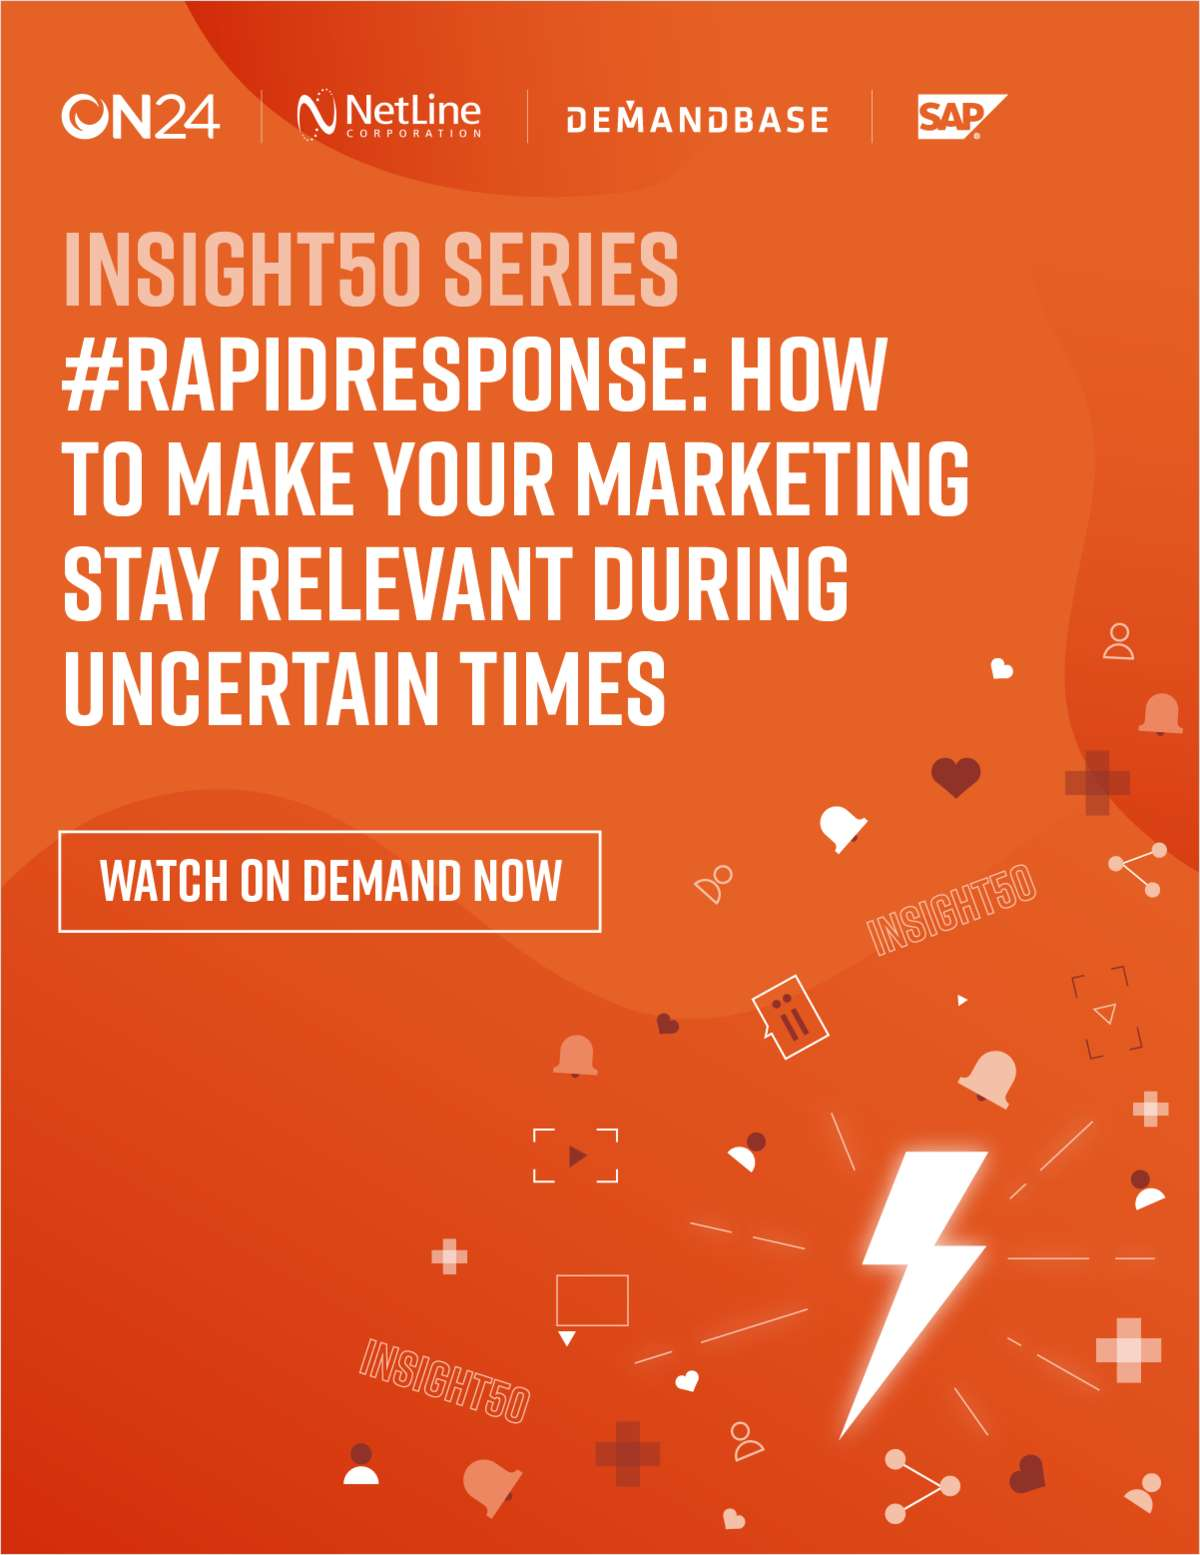 #RapidResponse: How to Make Your Marketing Stay Relevant During Uncertain Times